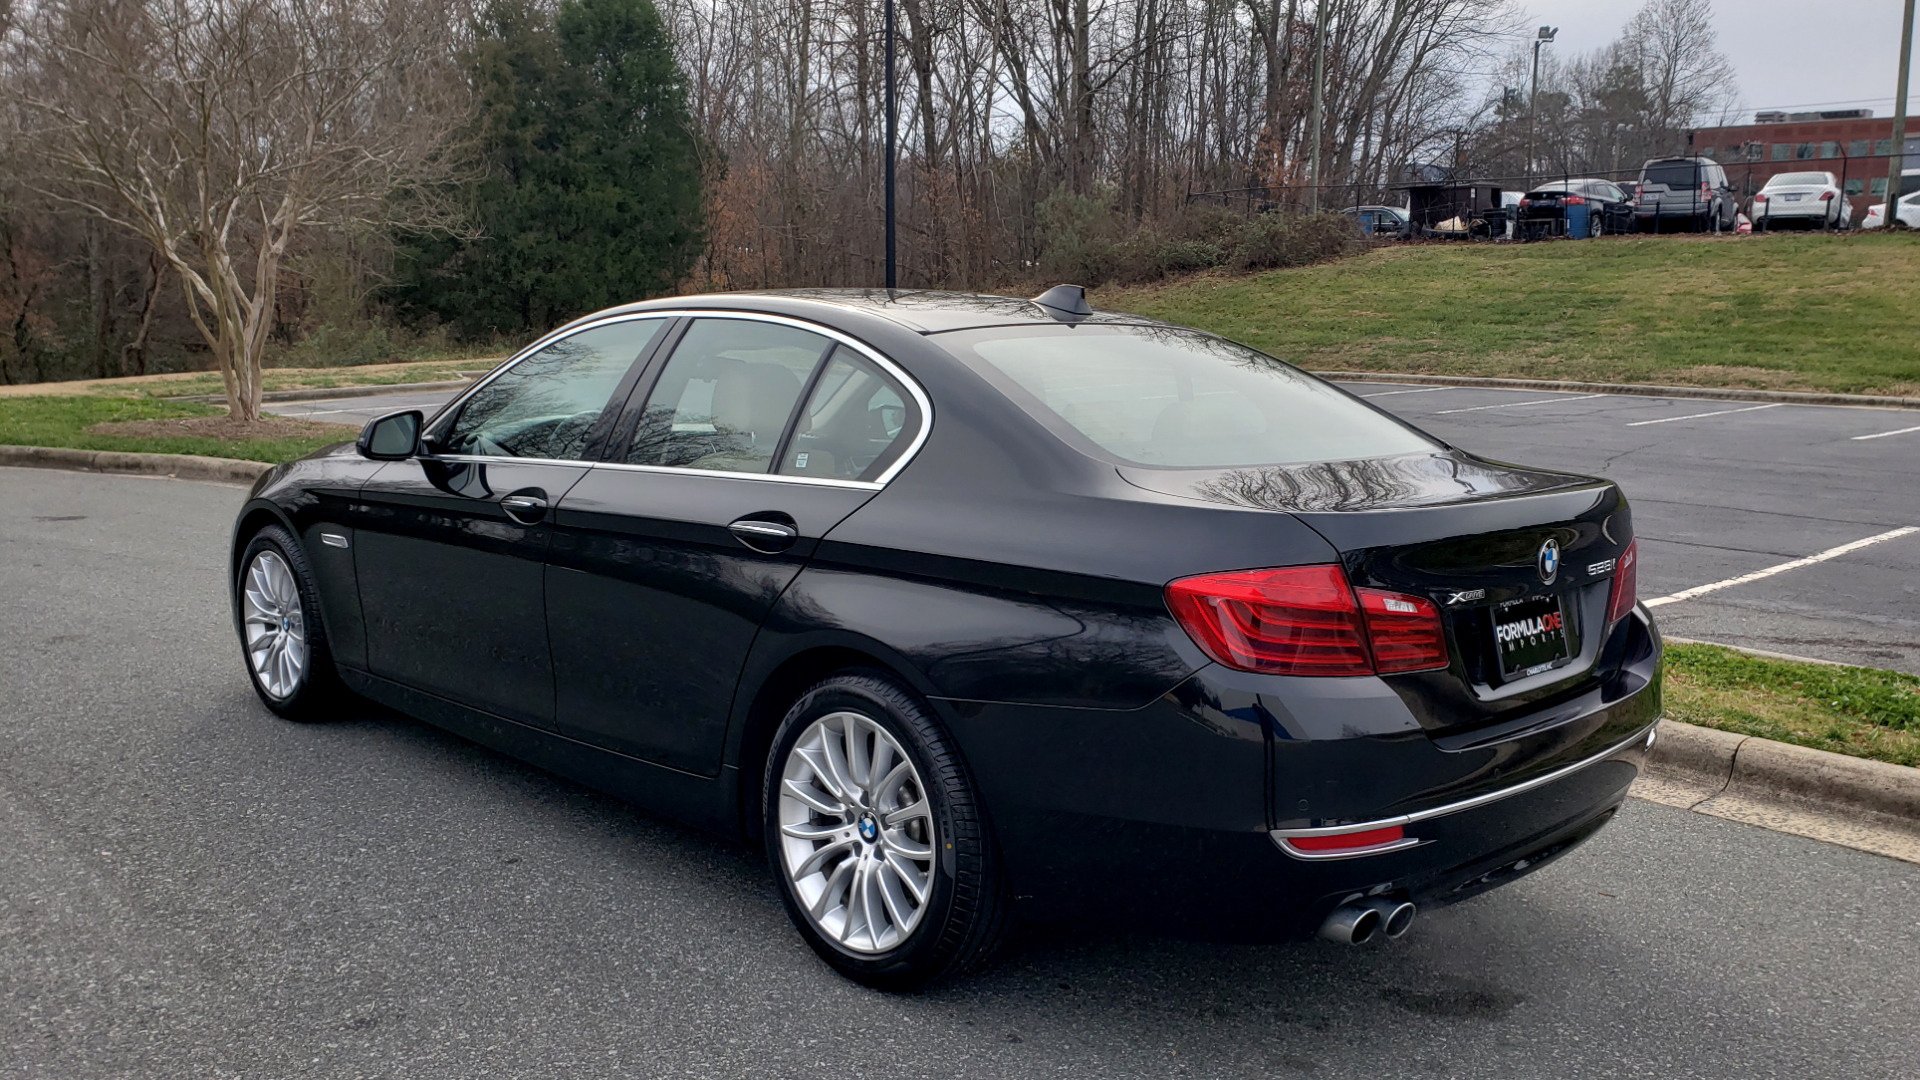 Used 2016 BMW 5 SERIES 528i XDRIVE / PREM PKG / DRVR ASST PLUS / LUXURY / COLD WTHR for sale Sold at Formula Imports in Charlotte NC 28227 3